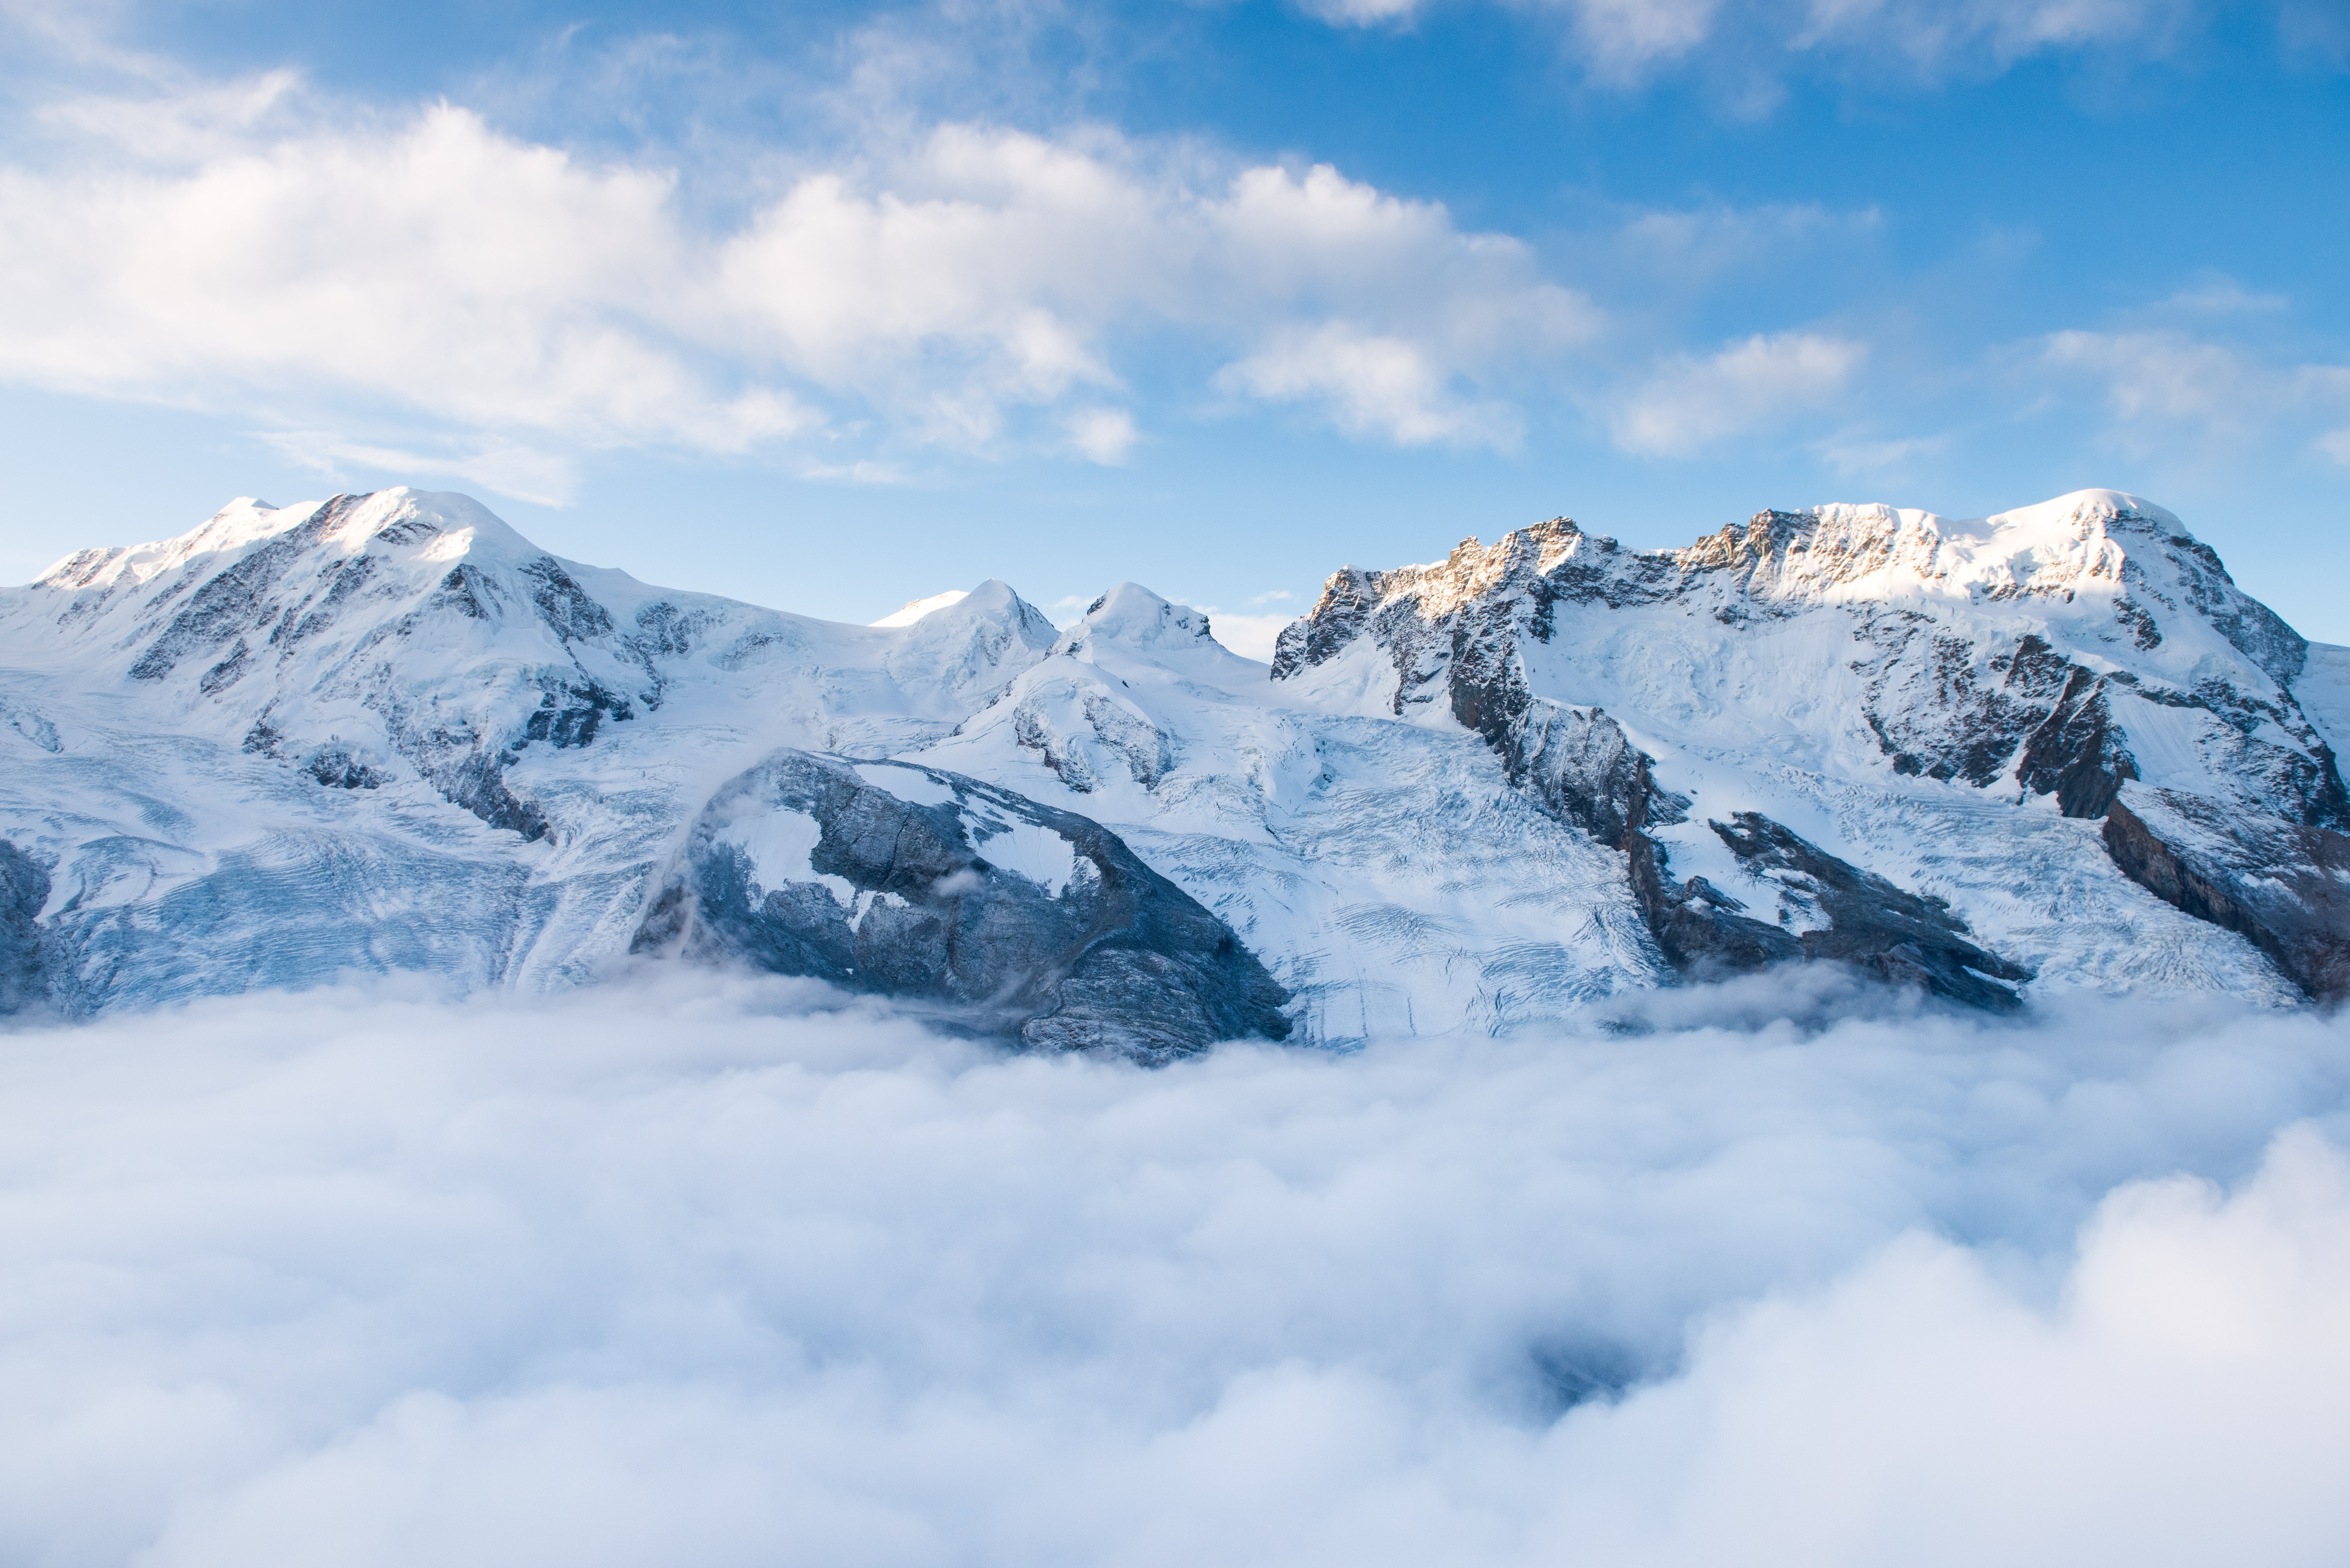 snow-capped mountain with sea of clouds